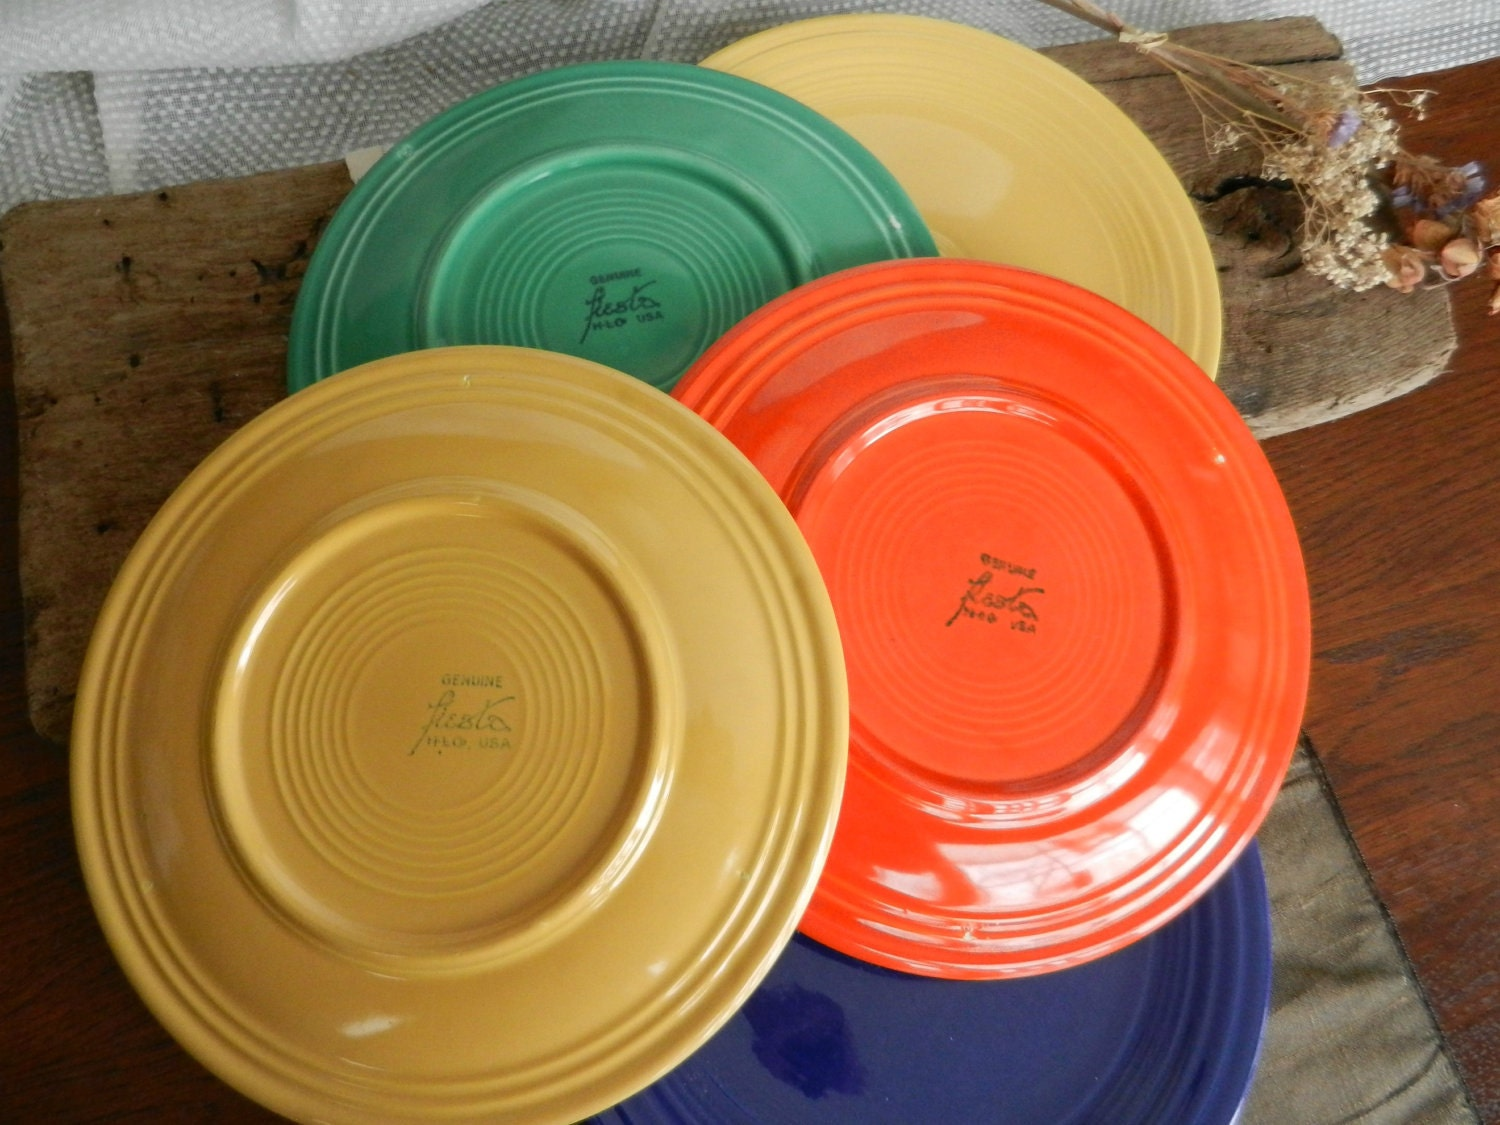 Fantastic Vintage Fiesta Dinner Plates Multi Colored Set Of & Fiesta Dinner Plates - Castrophotos